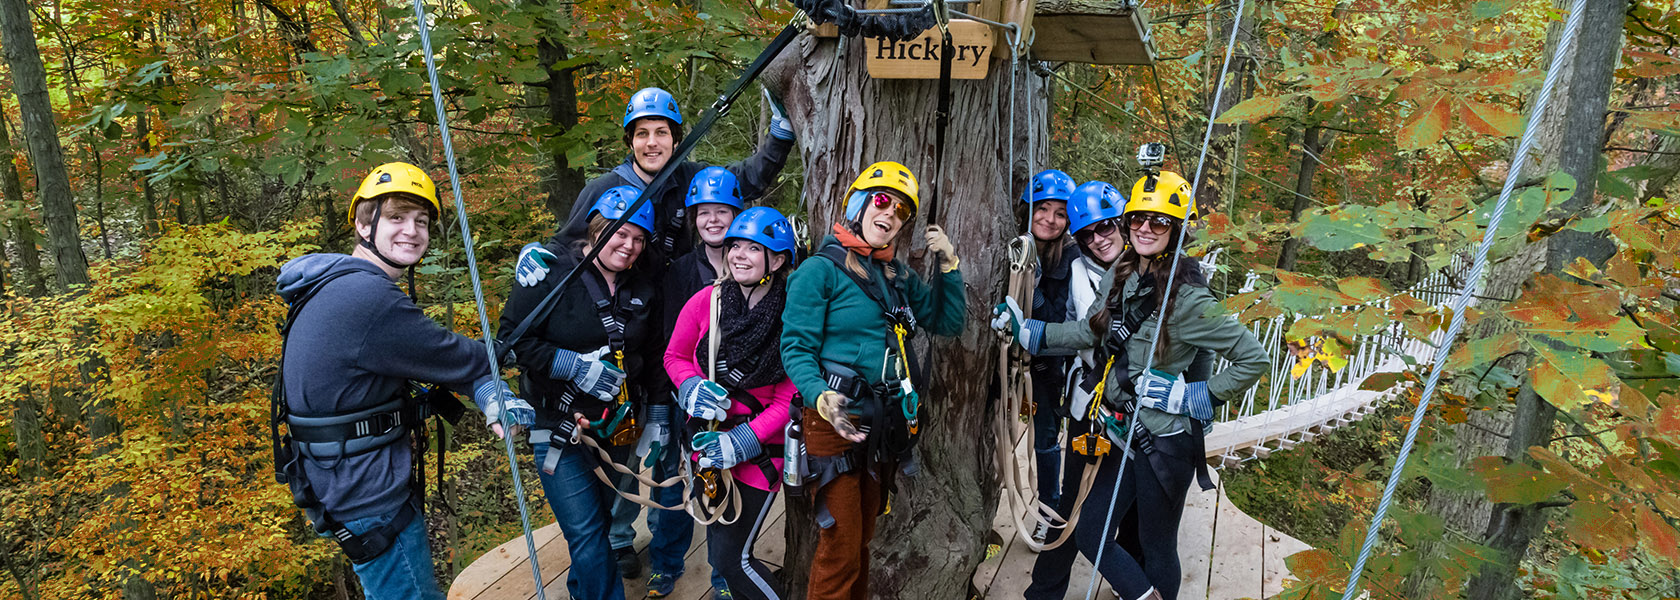 Common Grounds Zipline Canopy Tours